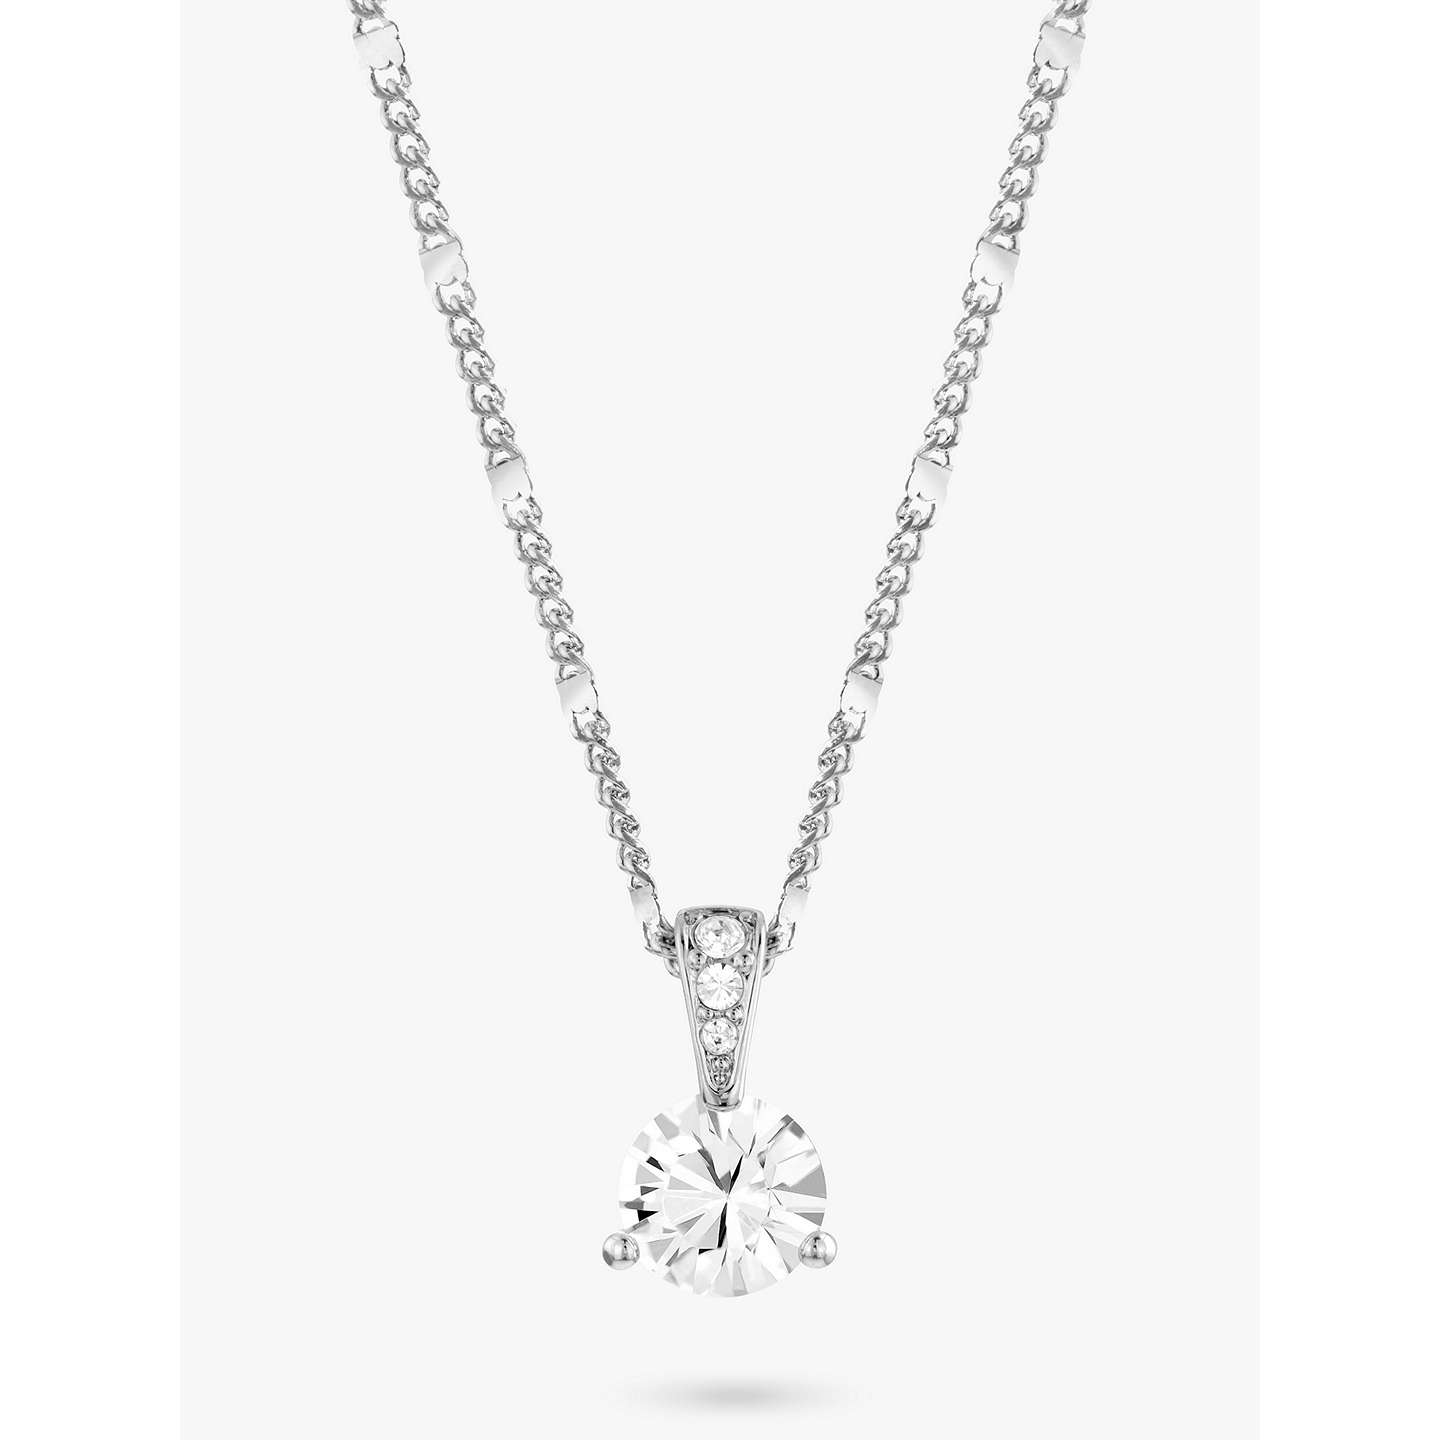 Swarovski solitaire round crystal pendant necklace silver at john lewis buyswarovski solitaire round crystal pendant necklace silver online at johnlewis mozeypictures Gallery